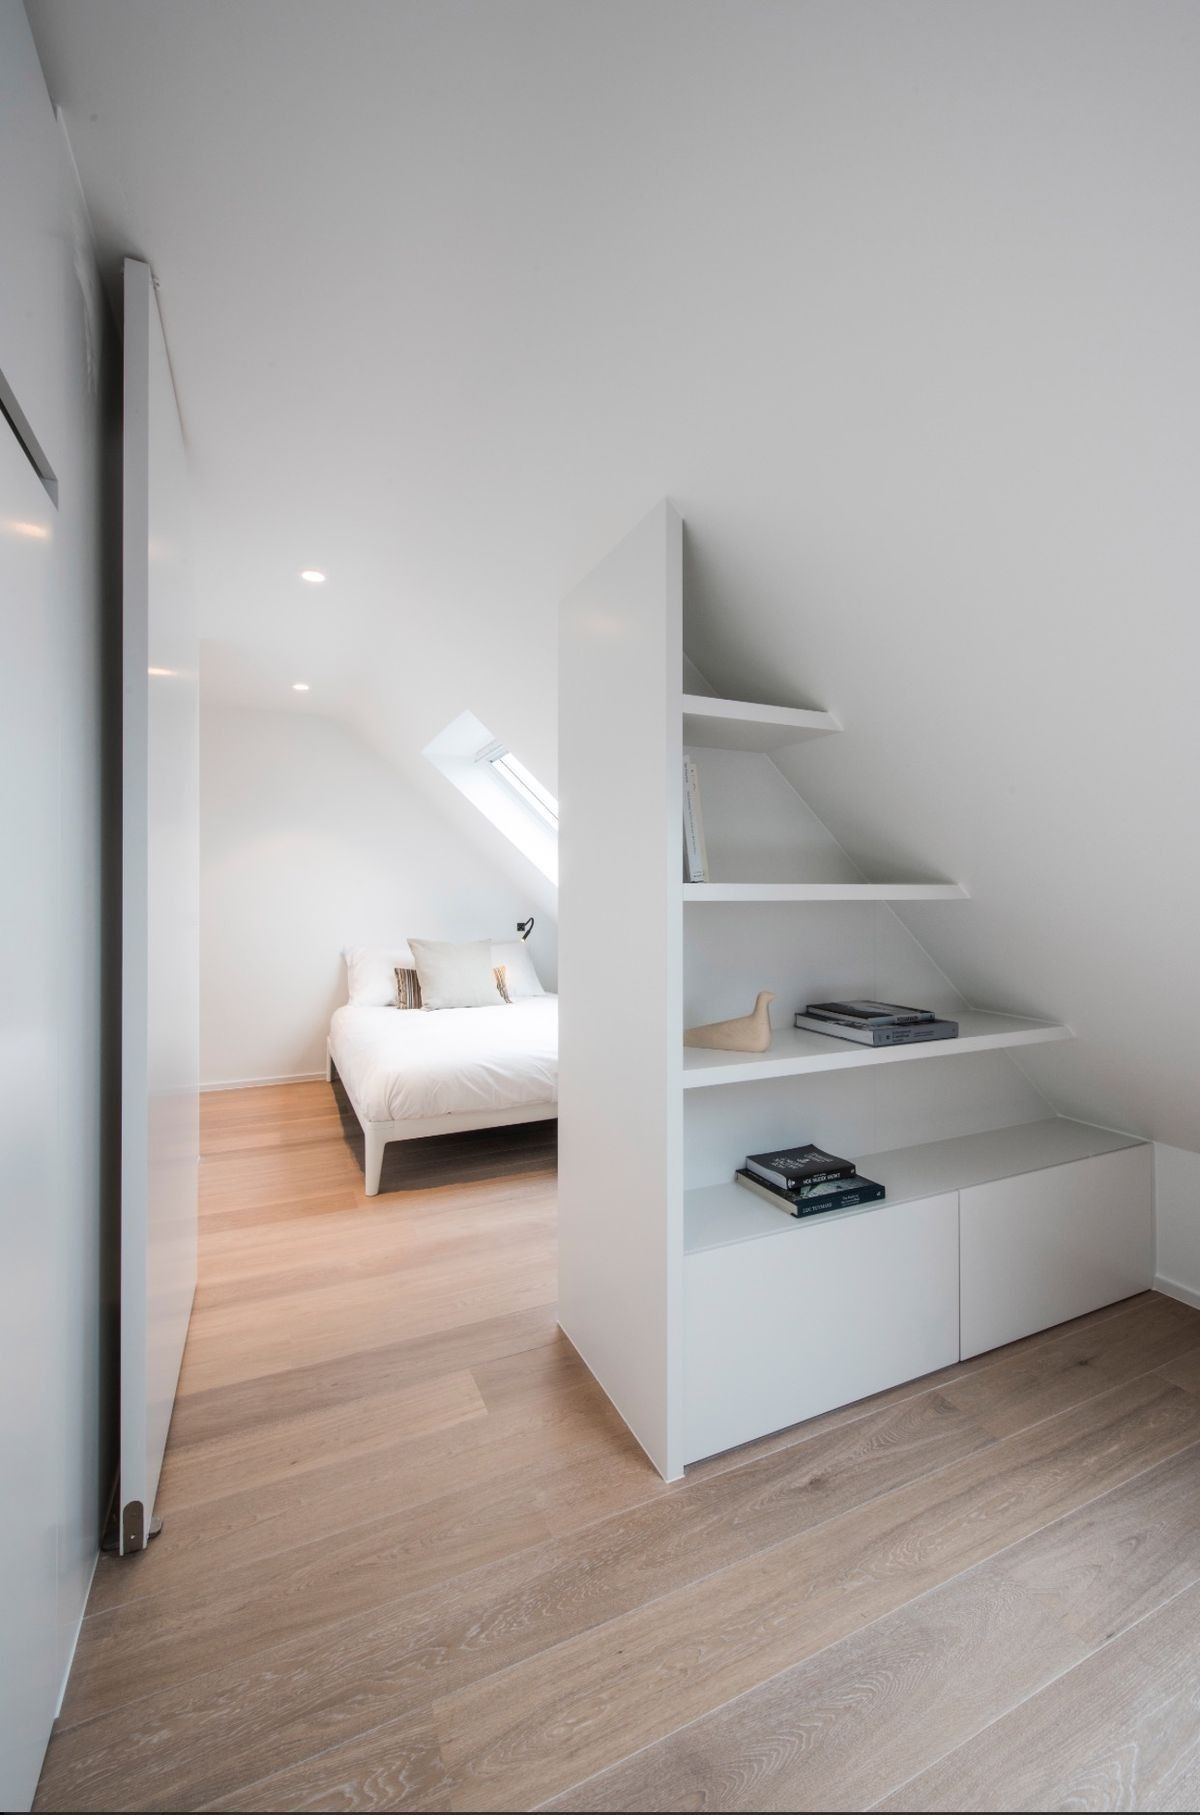 Attic Room Ideas Attic Bedroom Small Loft Room Attic Bedroom